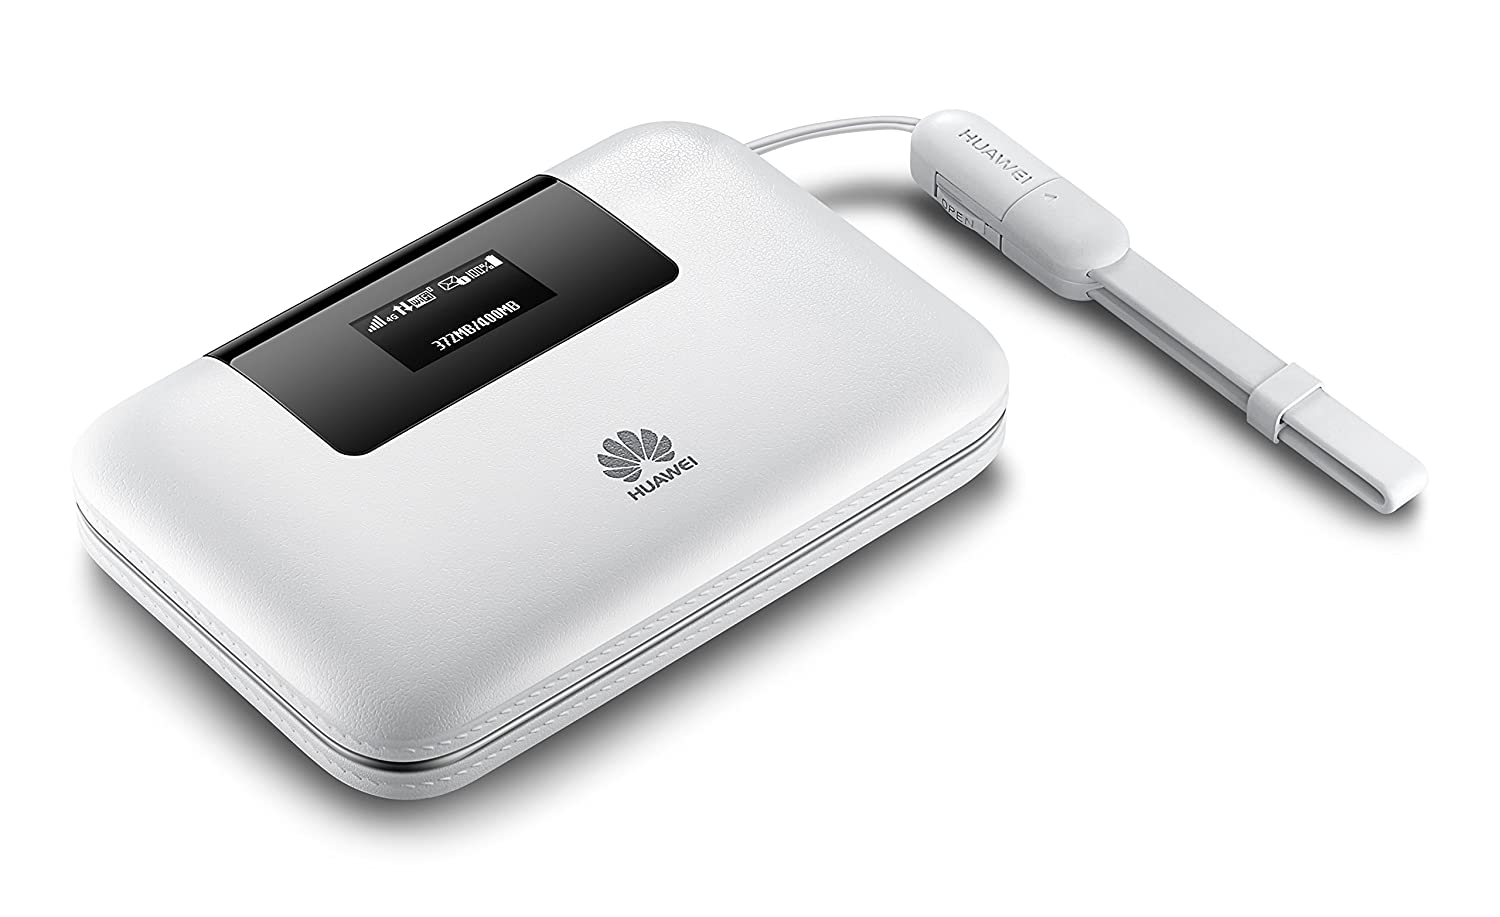 Mobile router WIFI 3G 4G LTE. Huawei Mobile 3G WIFI Router 76